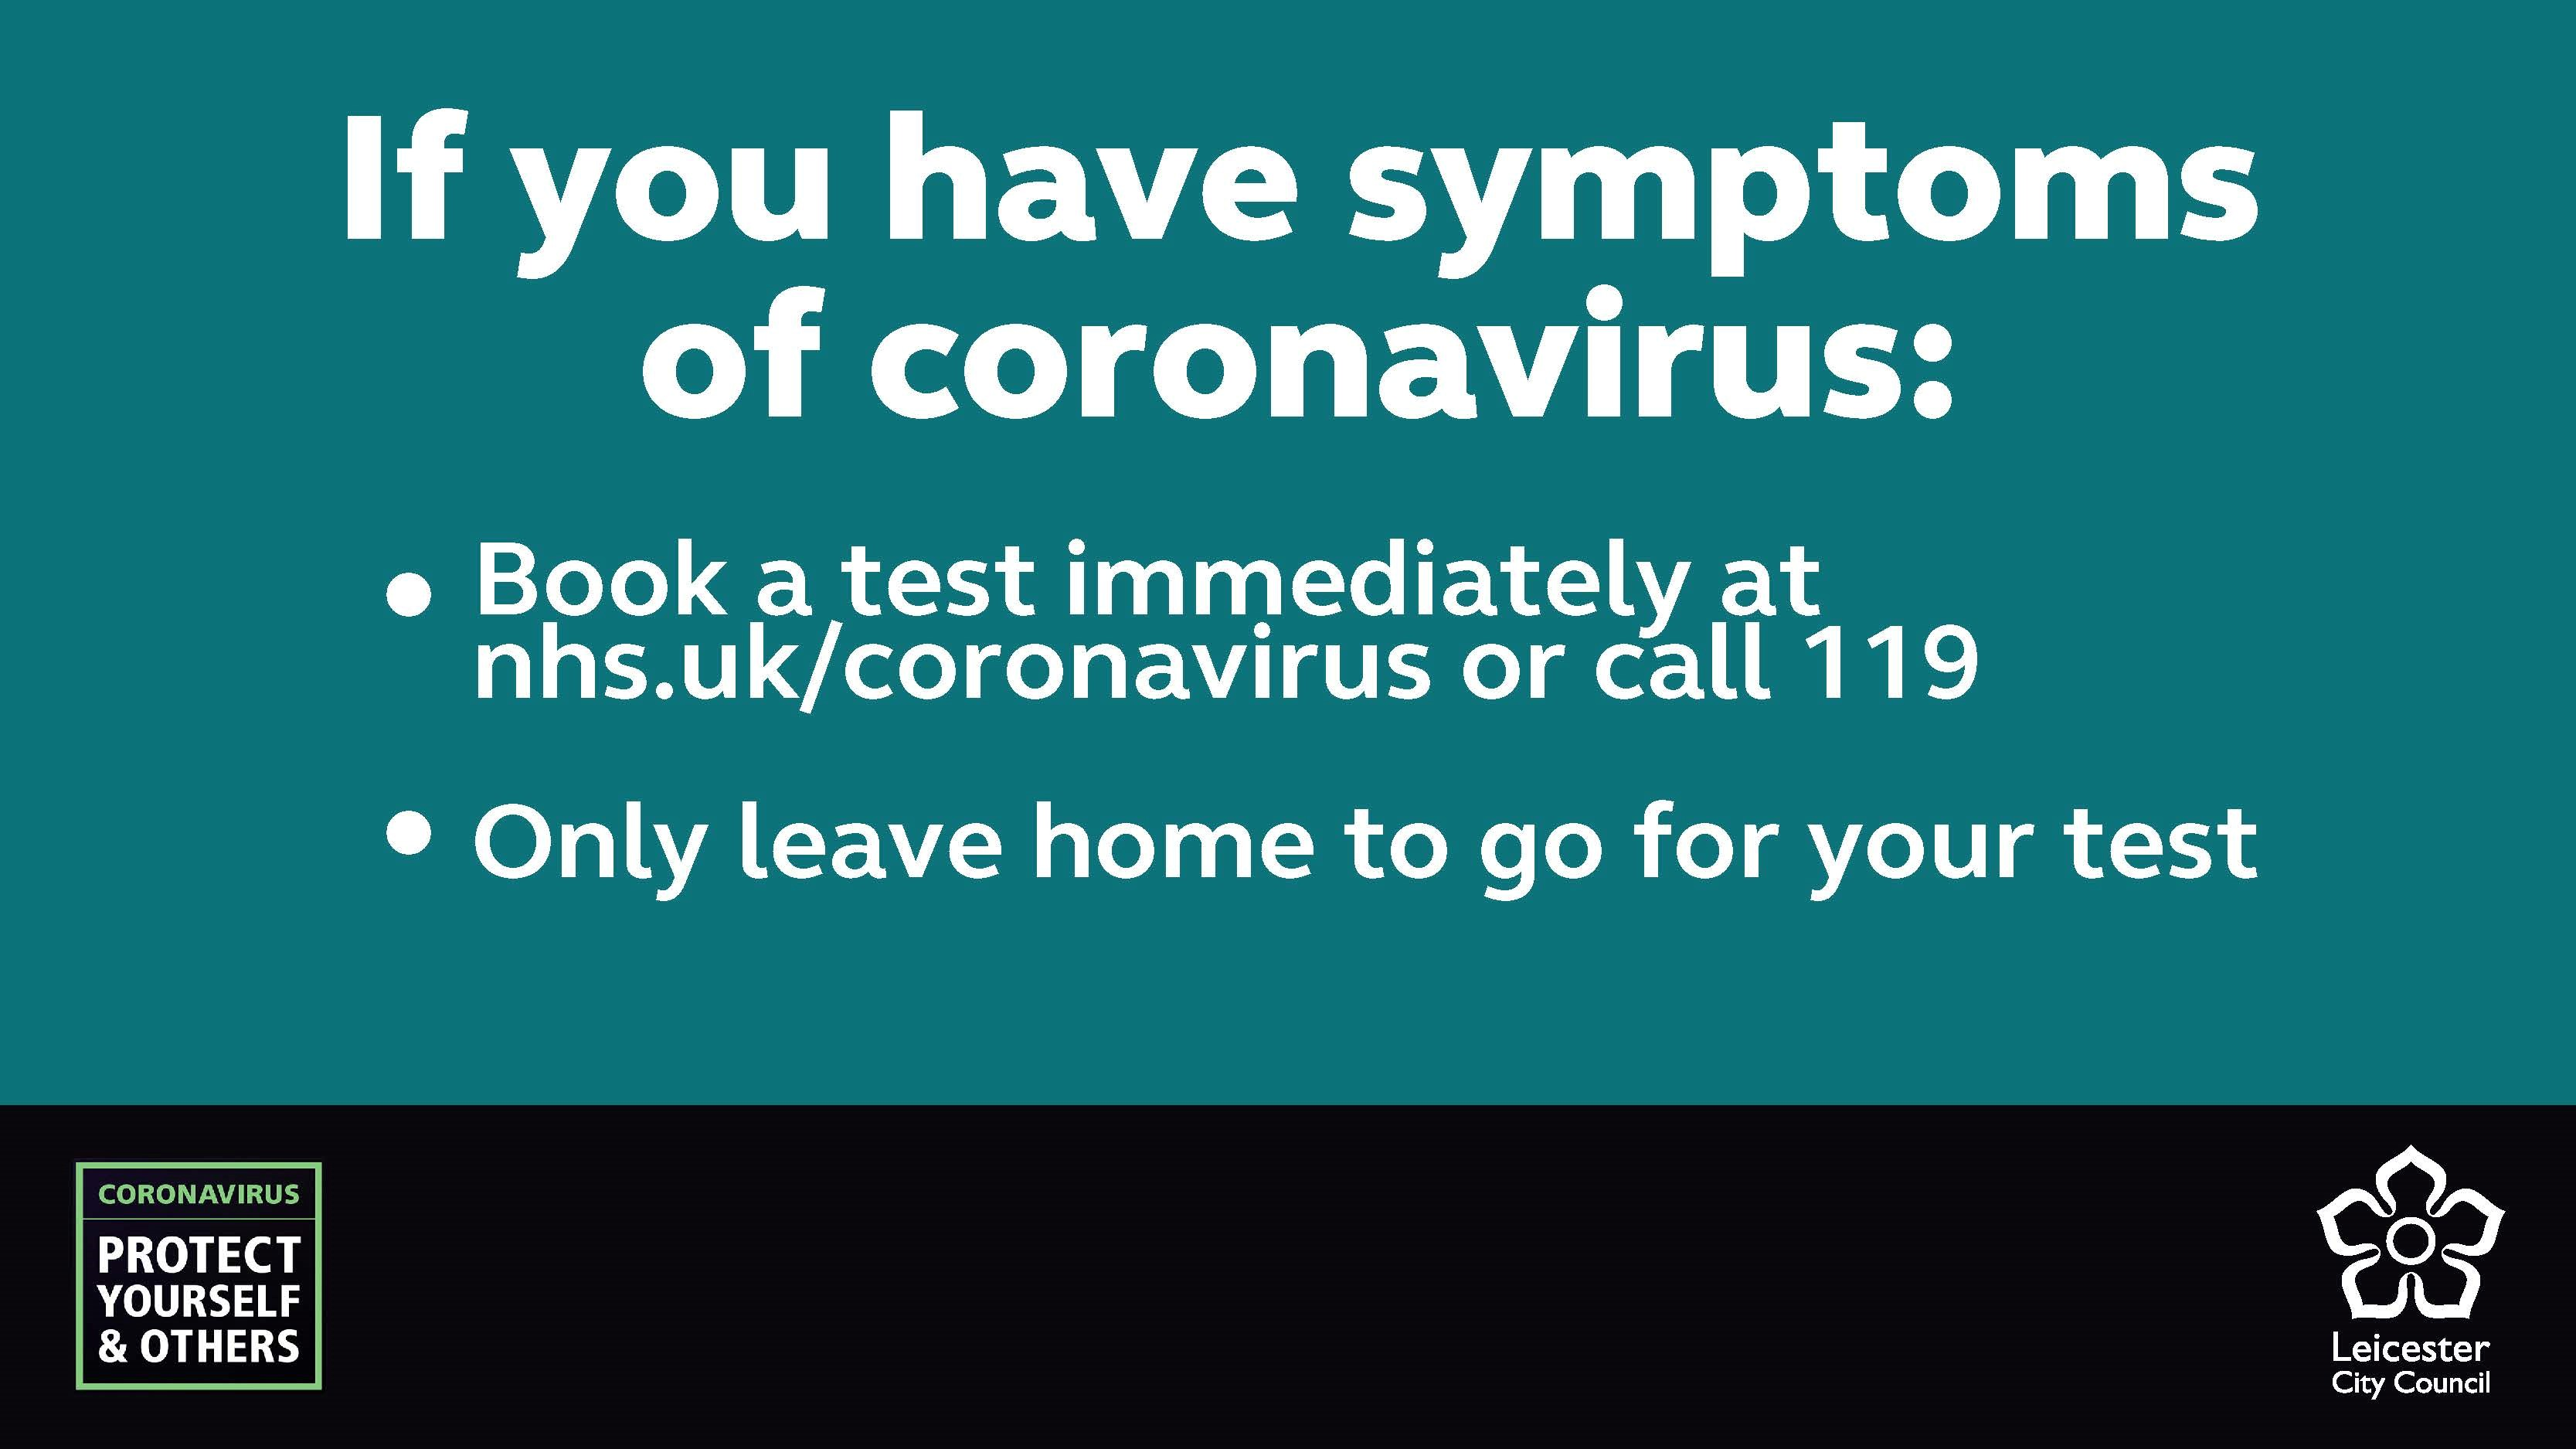 If you have symptoms of coronavirus: Book a test immediately at nhs.uk/coronavirus or call 119. Only leave home to go for your test